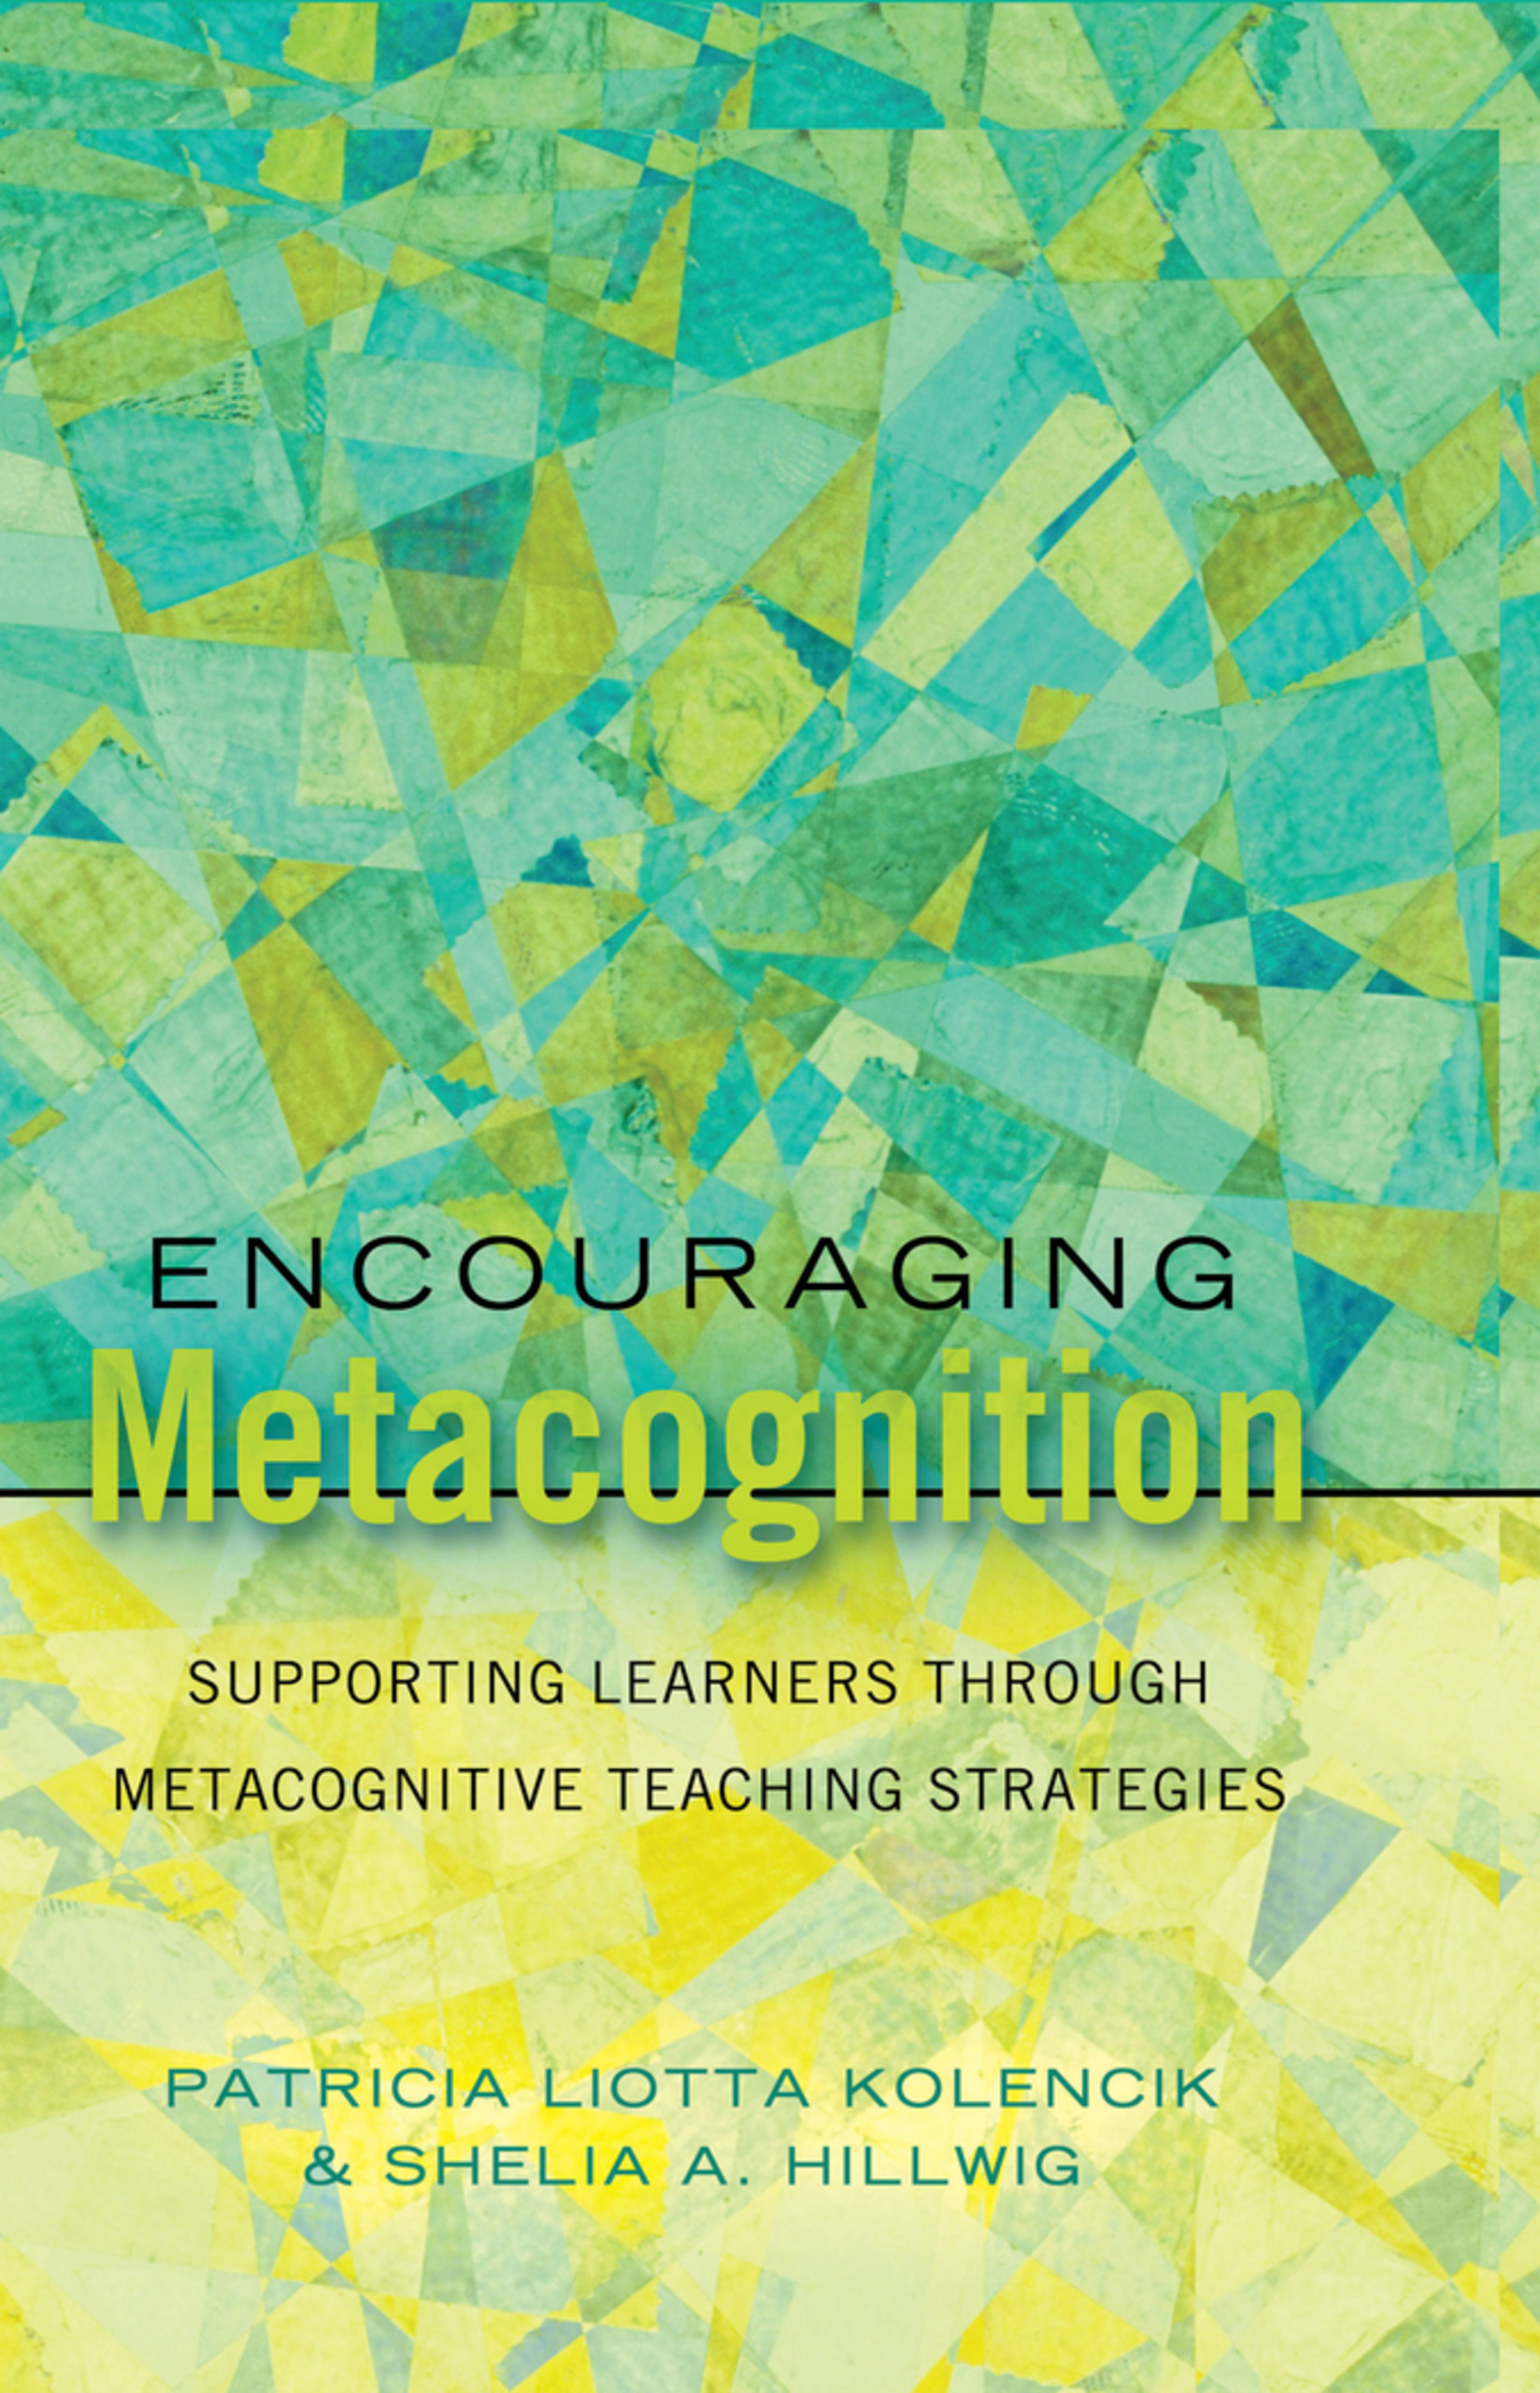 Title: Encouraging Metacognition